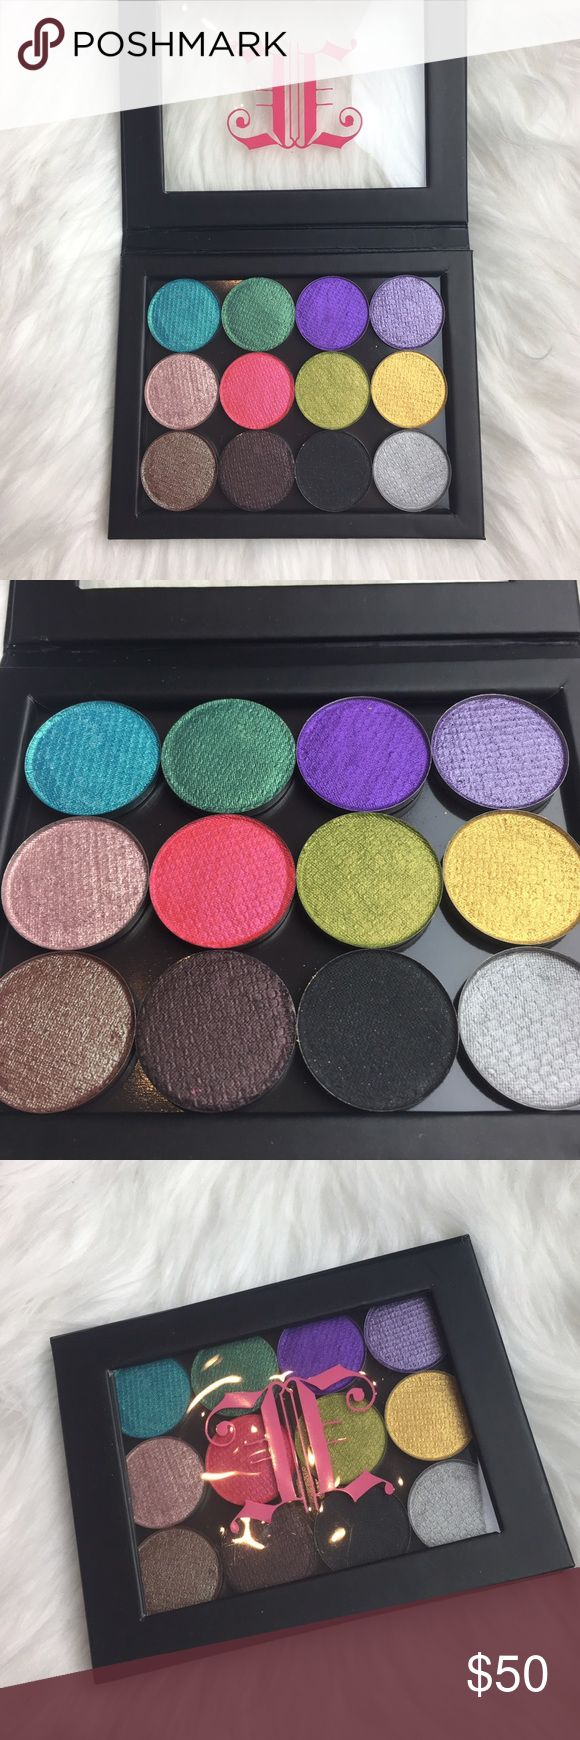 New vegan pro pigmented 12 pan eyeshadow palette This palette contains 12 brand new pigmented pro vegan eyeshadows. I'm including the palette free with purchase!  Each single shadow retails for $10 & is from the indie brand Johnny Concert. Never been used. Wet/dry formula. Johnny Concert products are formulated without:   NO FD&C DYES NO TALC NO PARABENS NO PHTHLATES NO BHA & BHT NO BISMUTH OXYCHLORIDE NO GLUTEN NO ANIMAL BY PRODUCT NO ANIMAL TESTING NO SYNTHETIC FRAGRANCE Makeup Eyeshadow